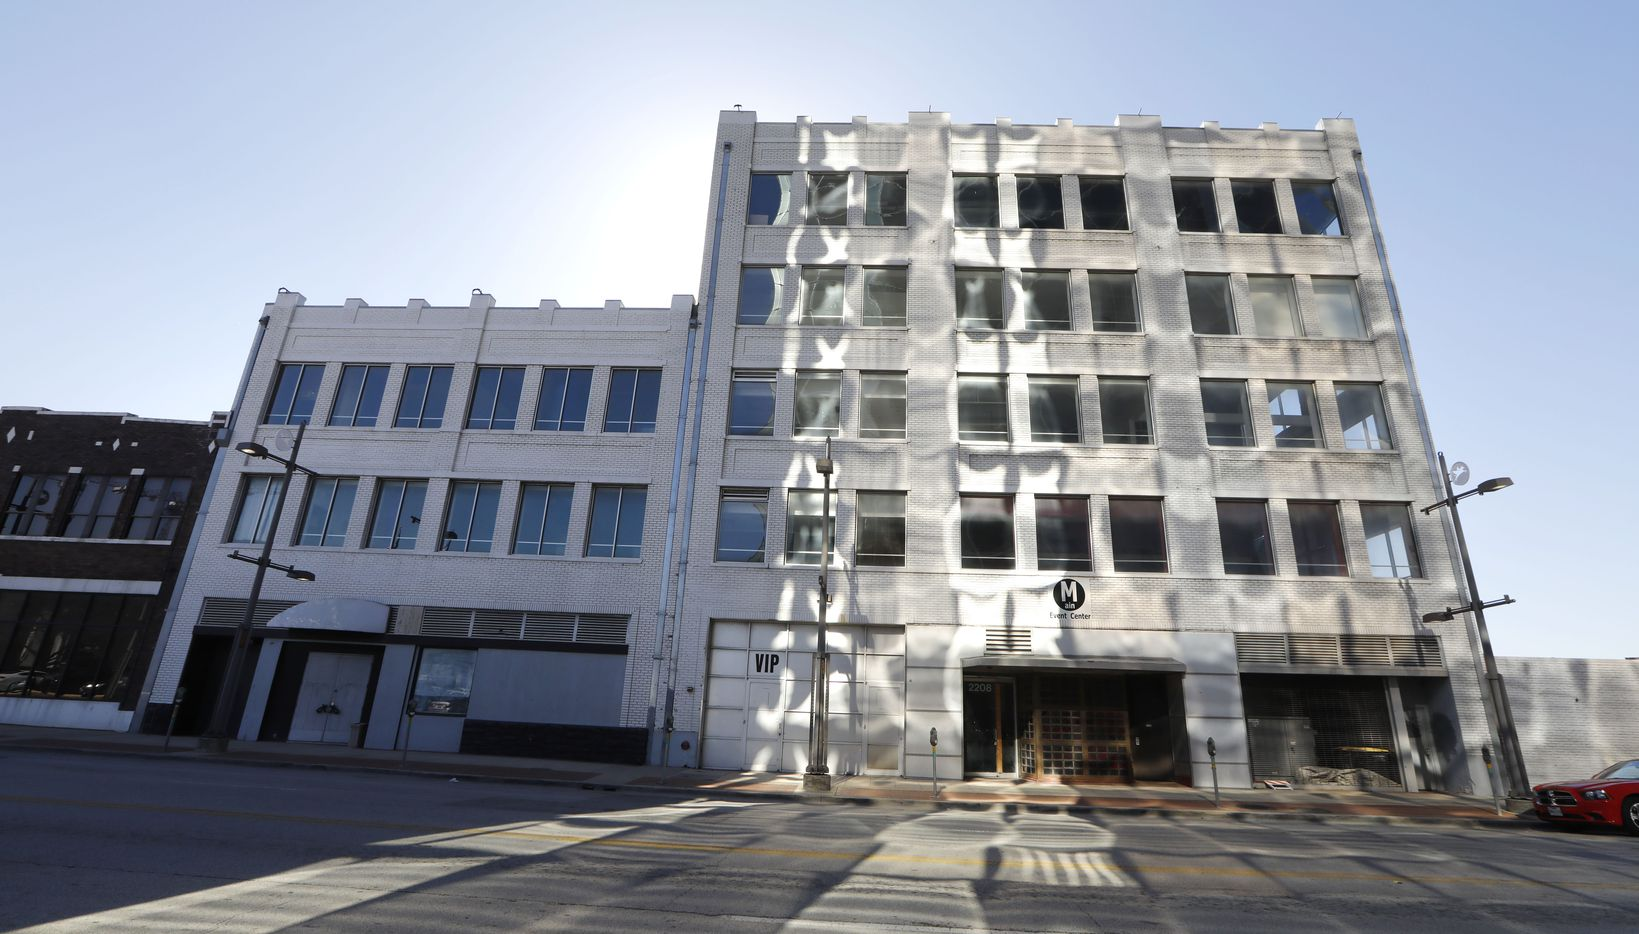 Aircraft manufacturer Chance-Vought and Blue Cross and Blue Shield were once based in this Main Street building.